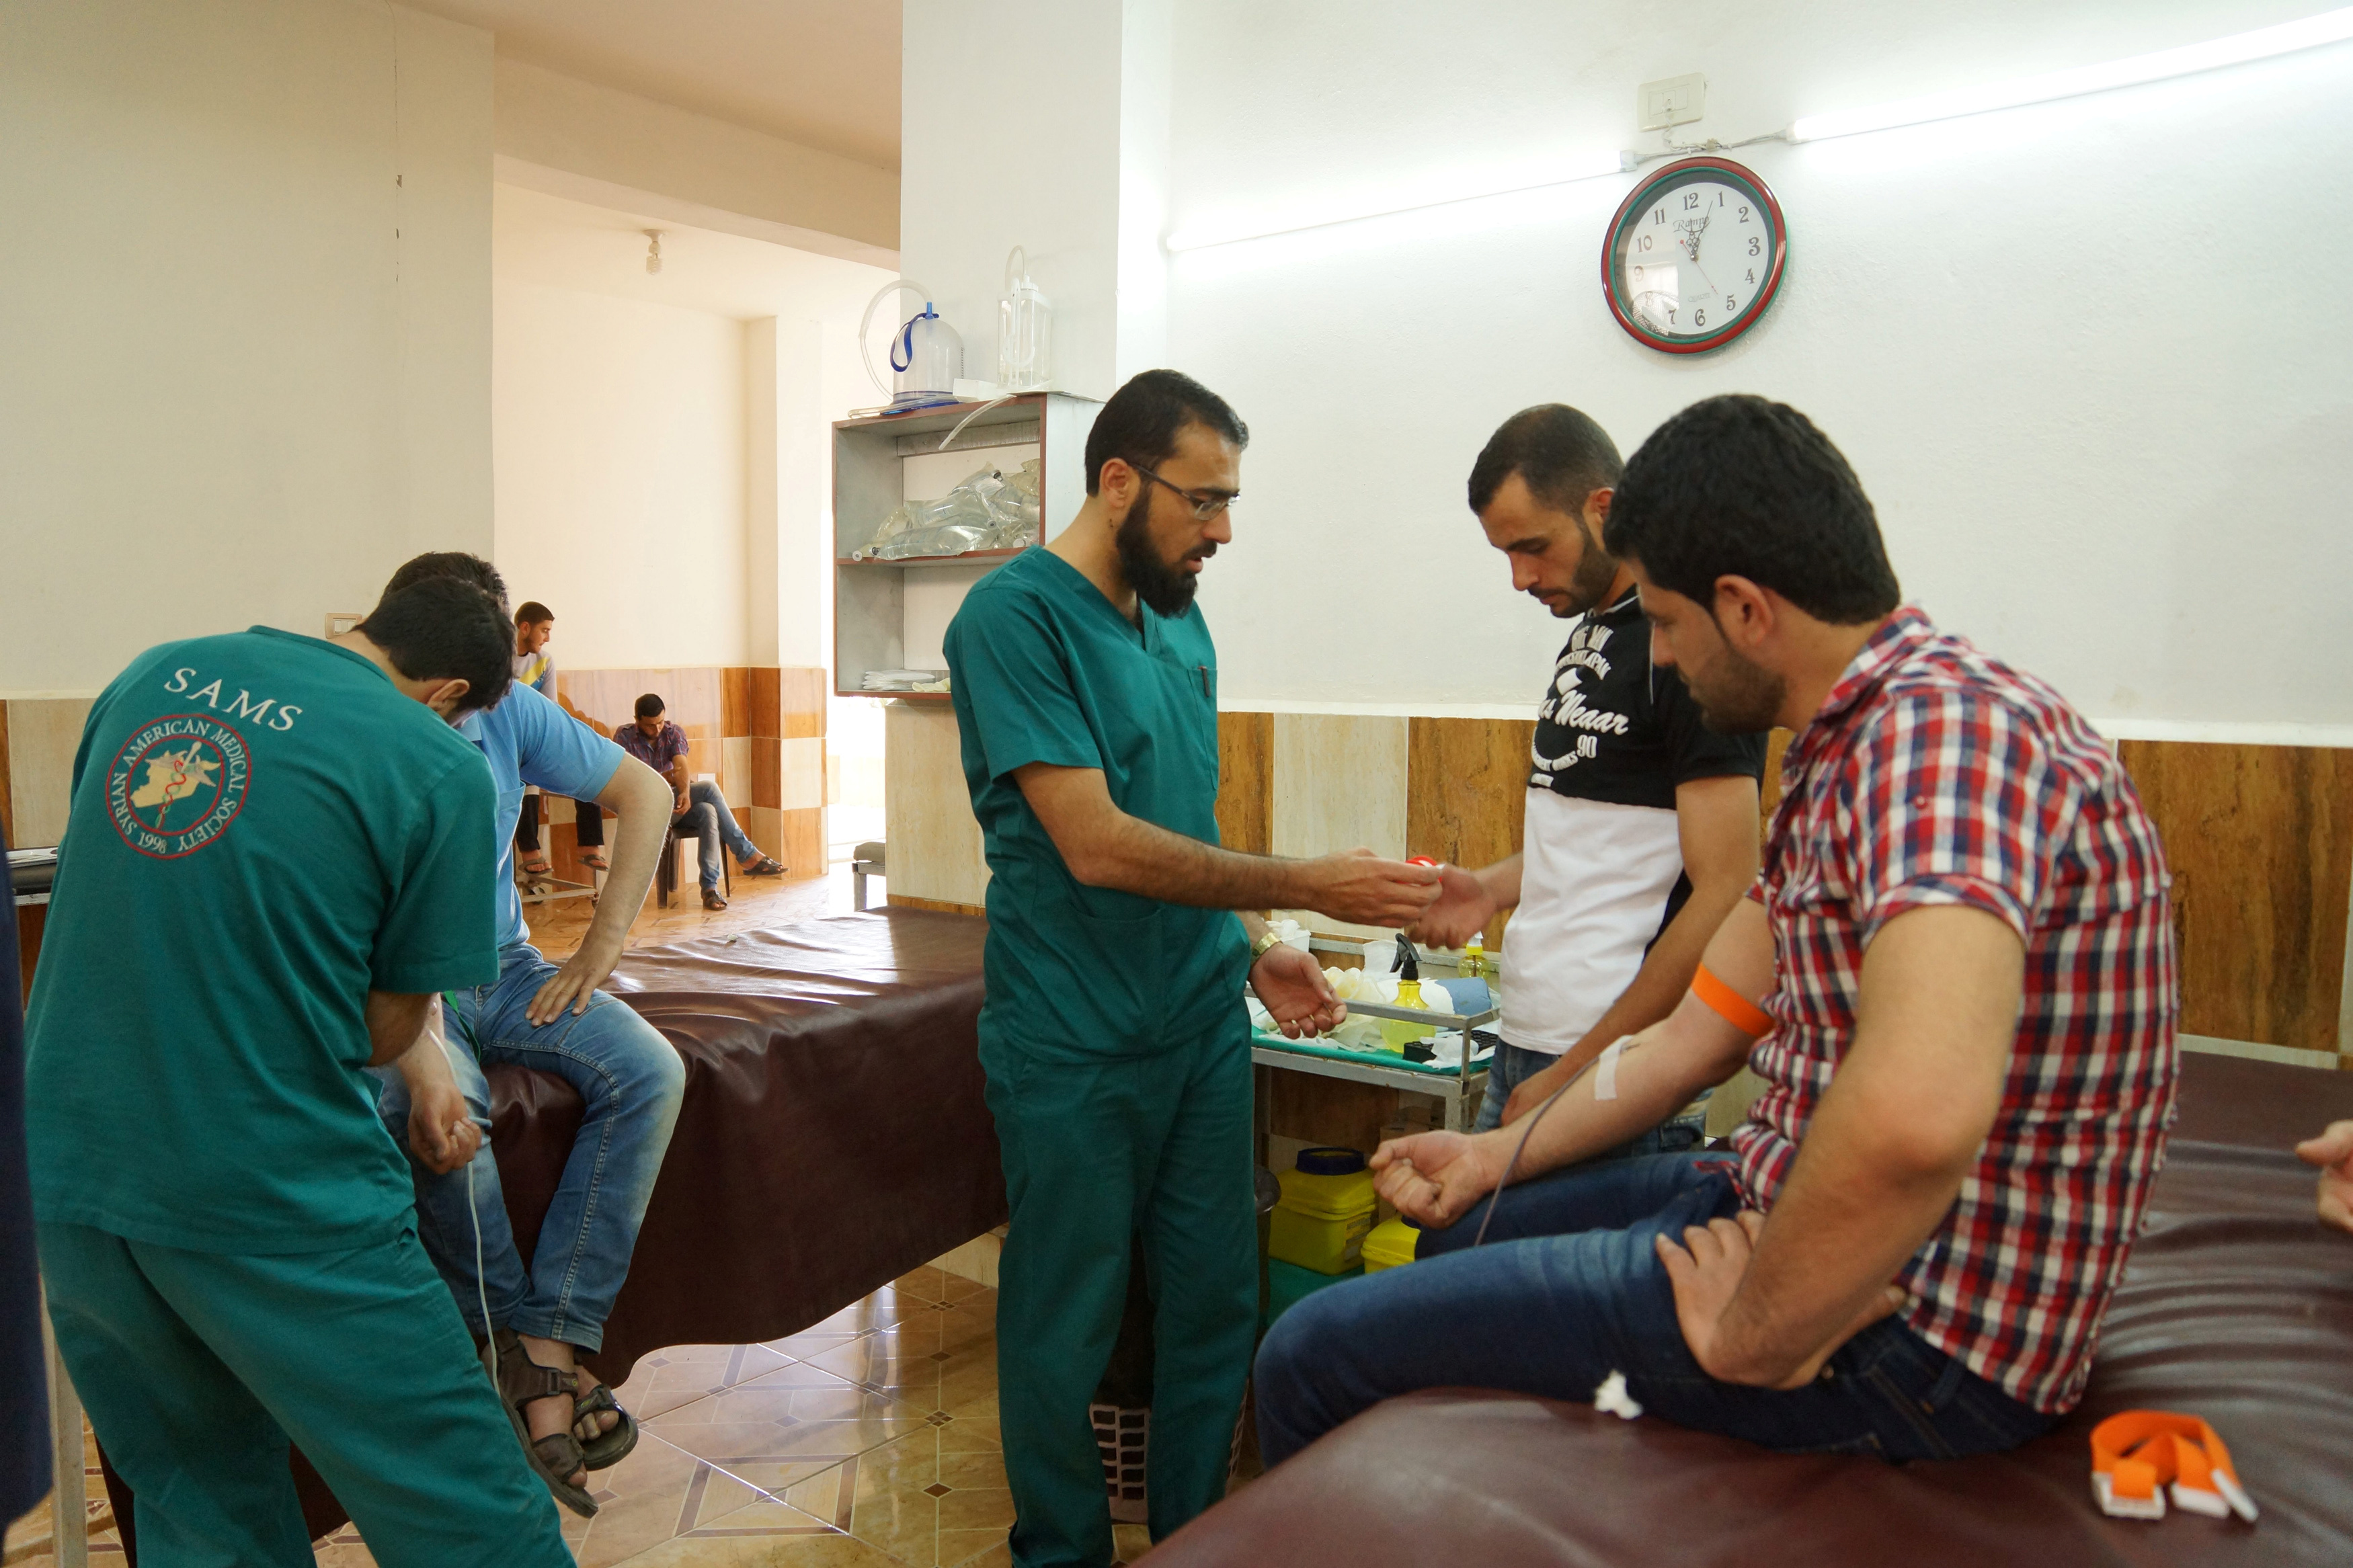 Medics help men donating blood during a campaign to supply blood to a hospital in the rebel-held town of Dael, in Deraa Governorate, Syria May 1, 2016.